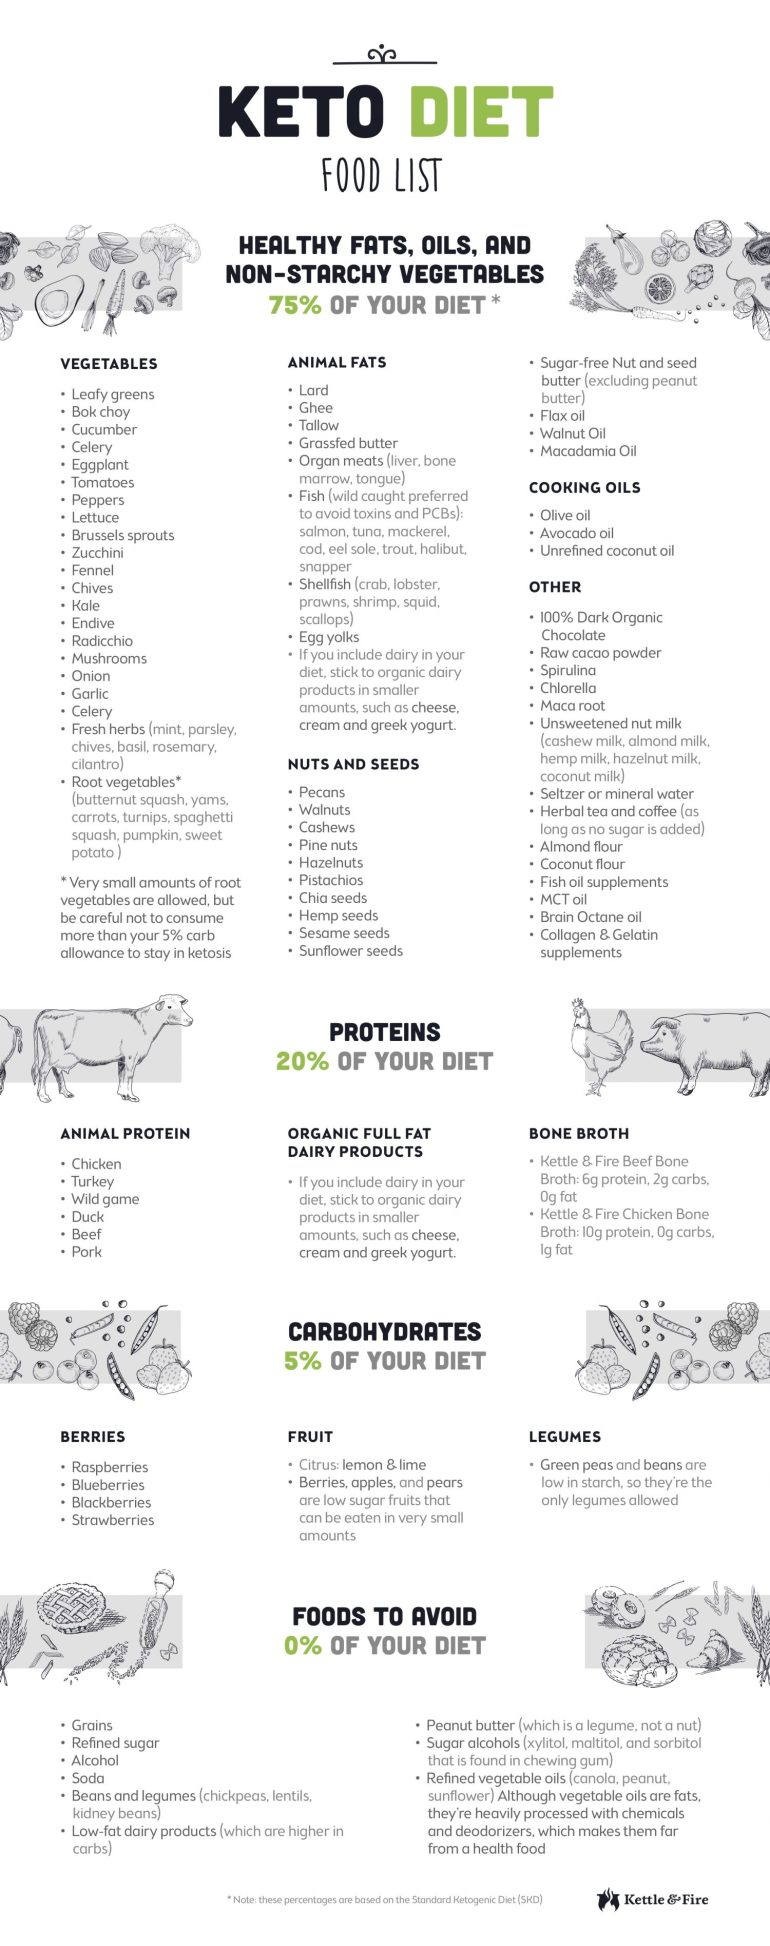 The Ultimate Keto Diet Beginner's Guide & Grocery List #keto #lowcarb  #ketodiet #